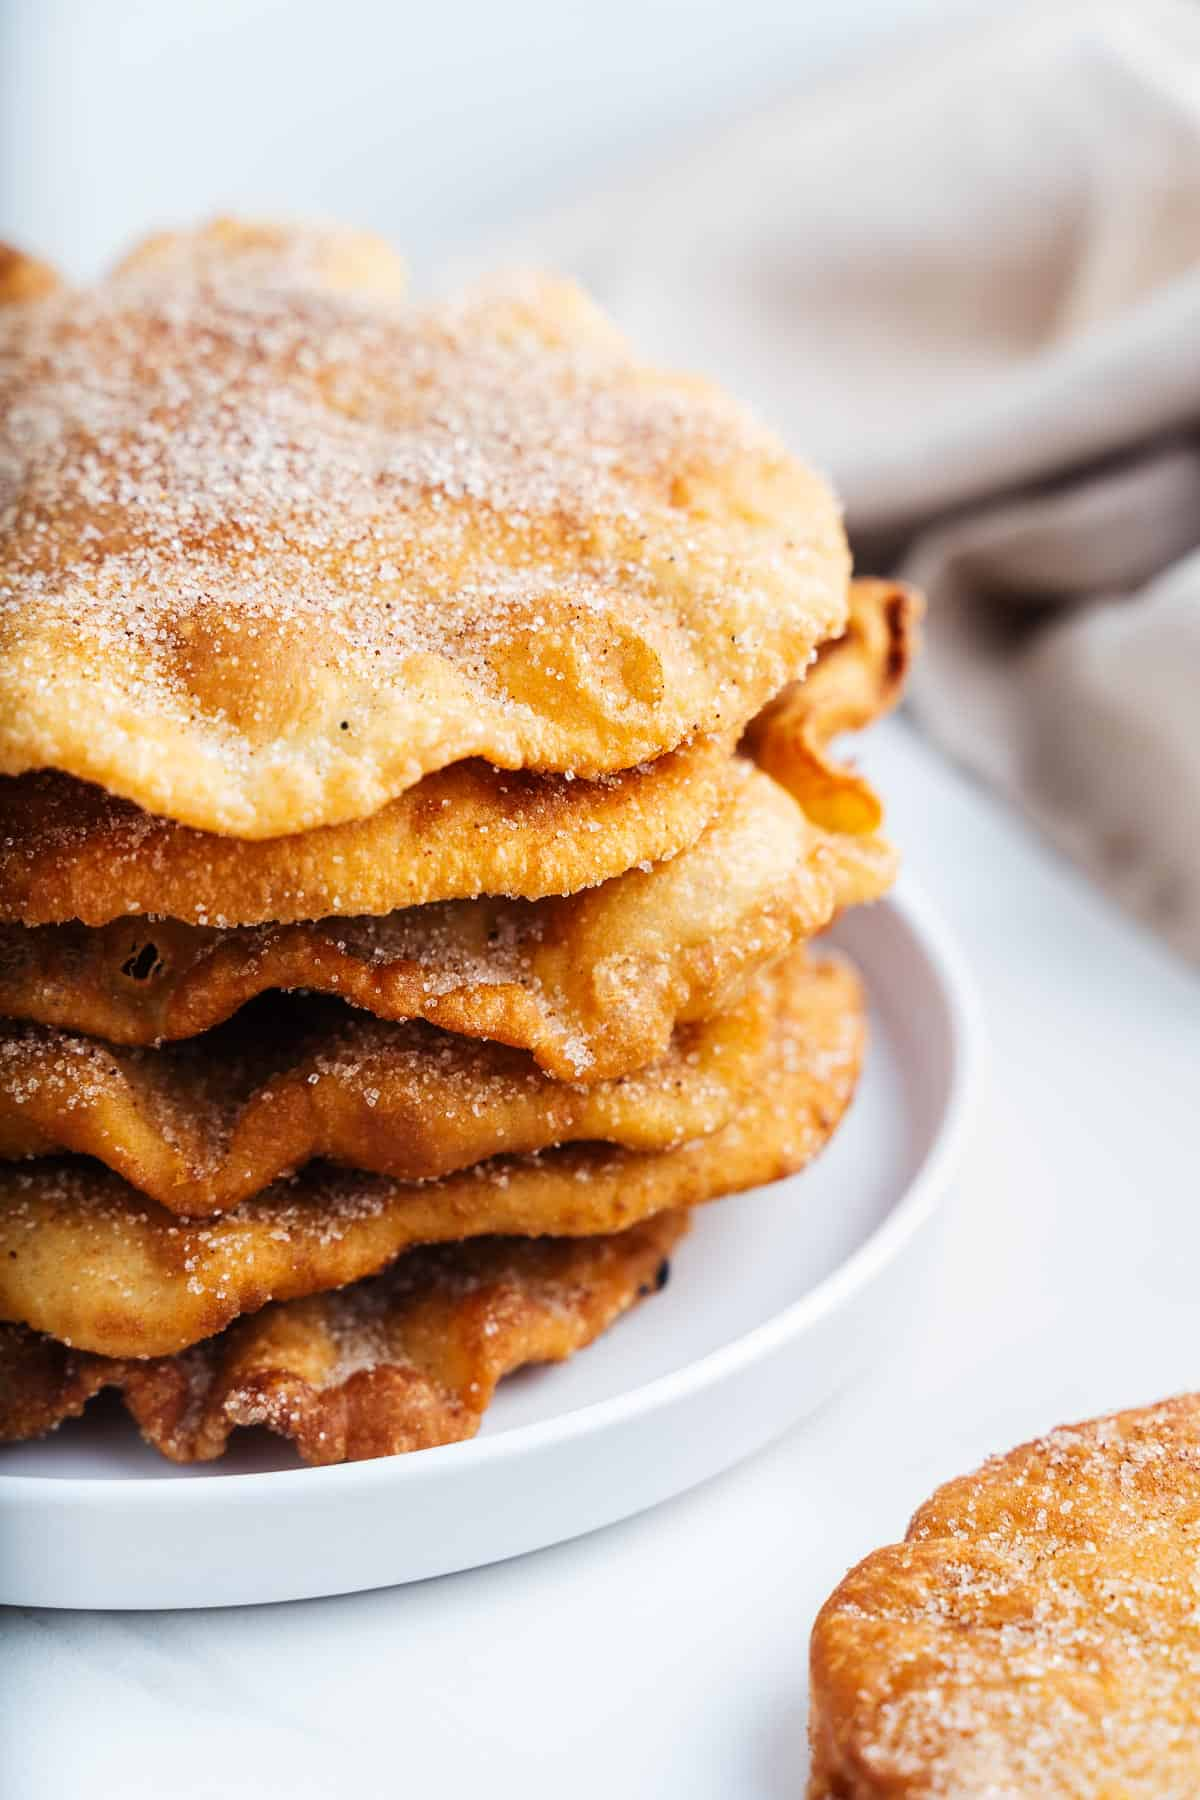 Stack of Buñuelos on a Plate